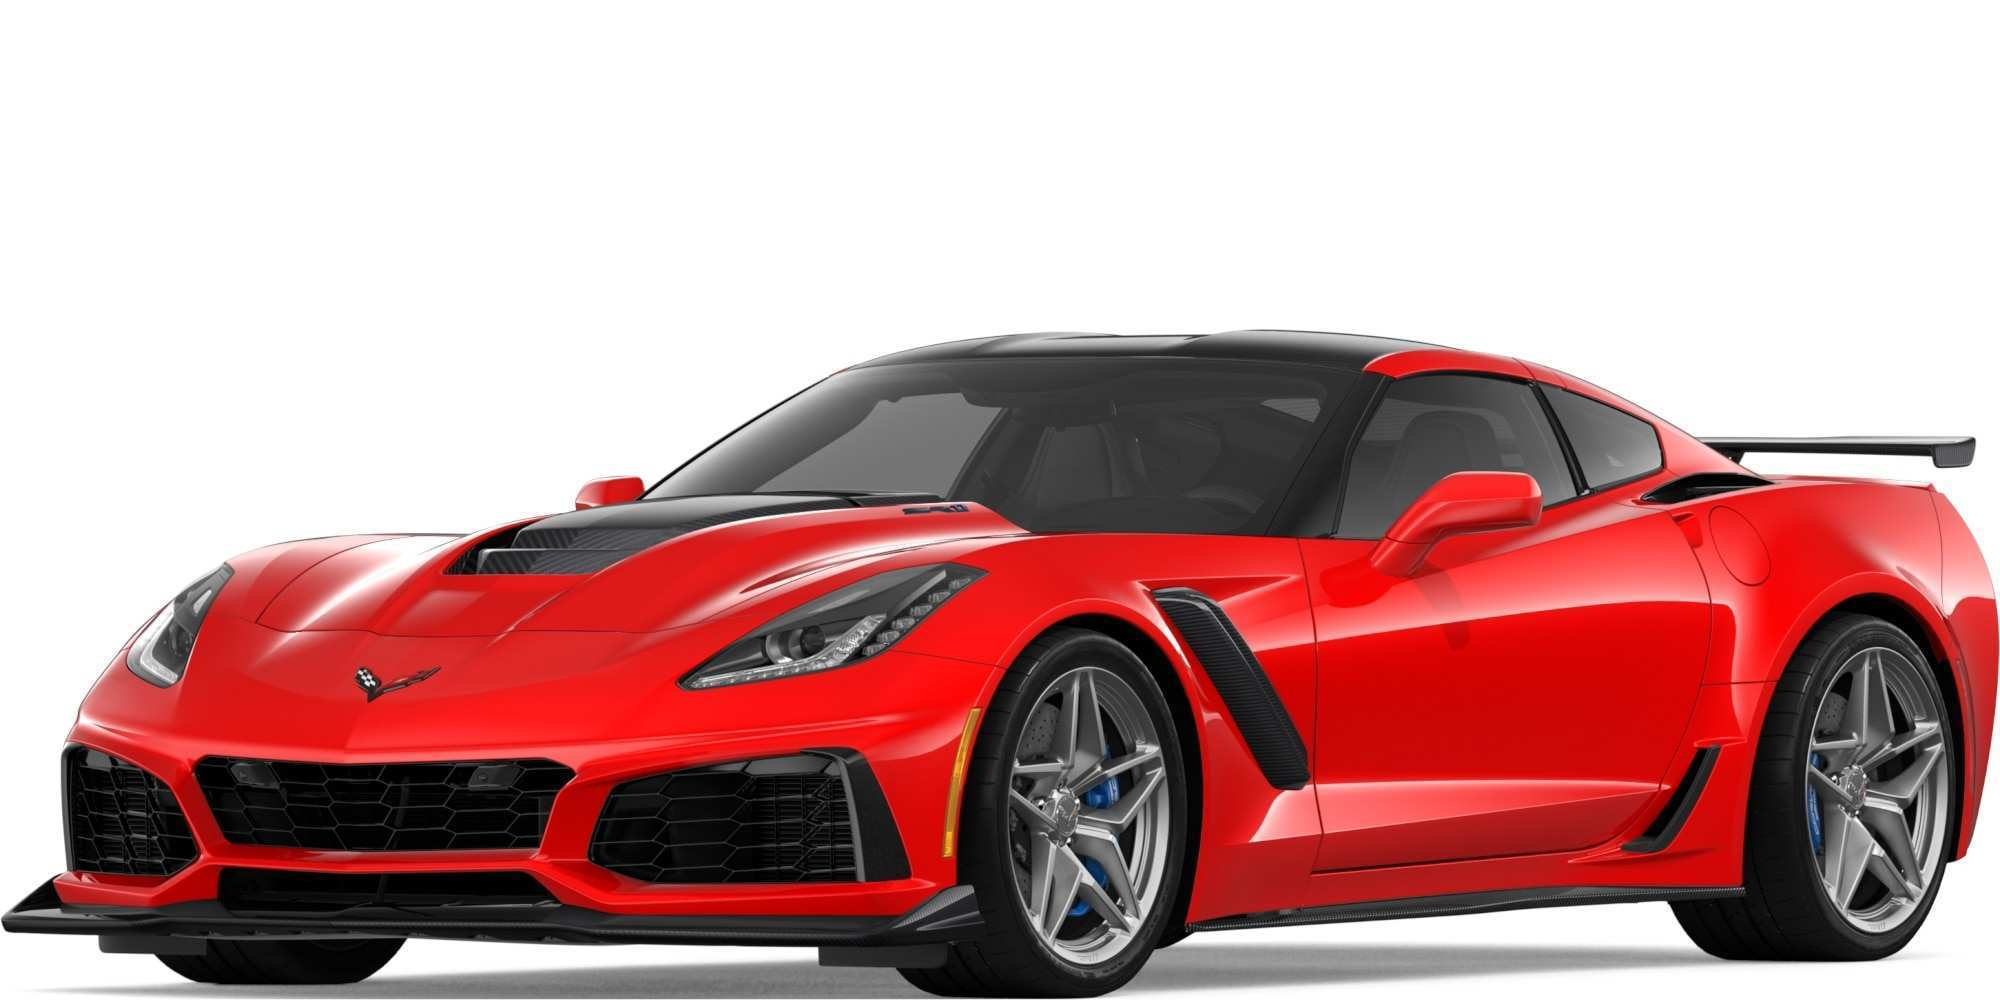 13 Best 2019 Chevrolet Corvette Price Concept